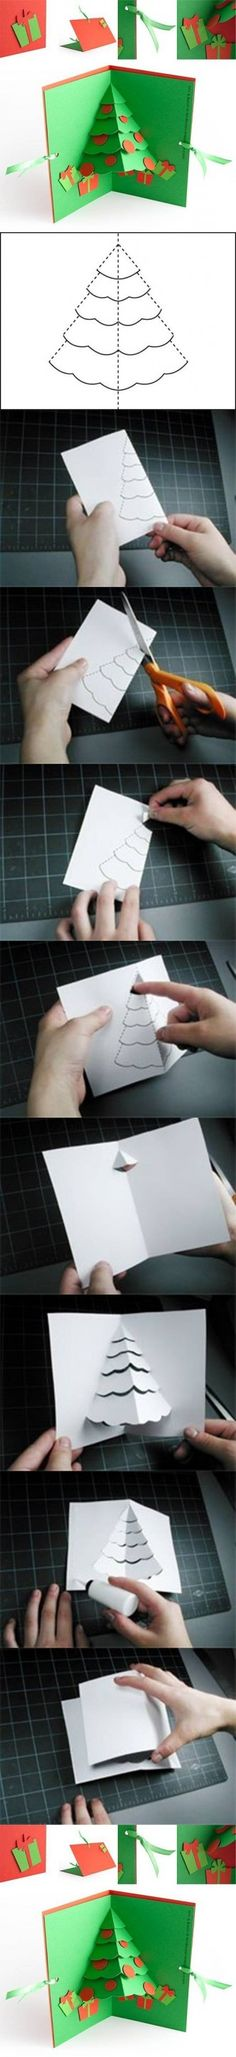 UsefulDIY - Number One Source for DIY Projects - Part 46